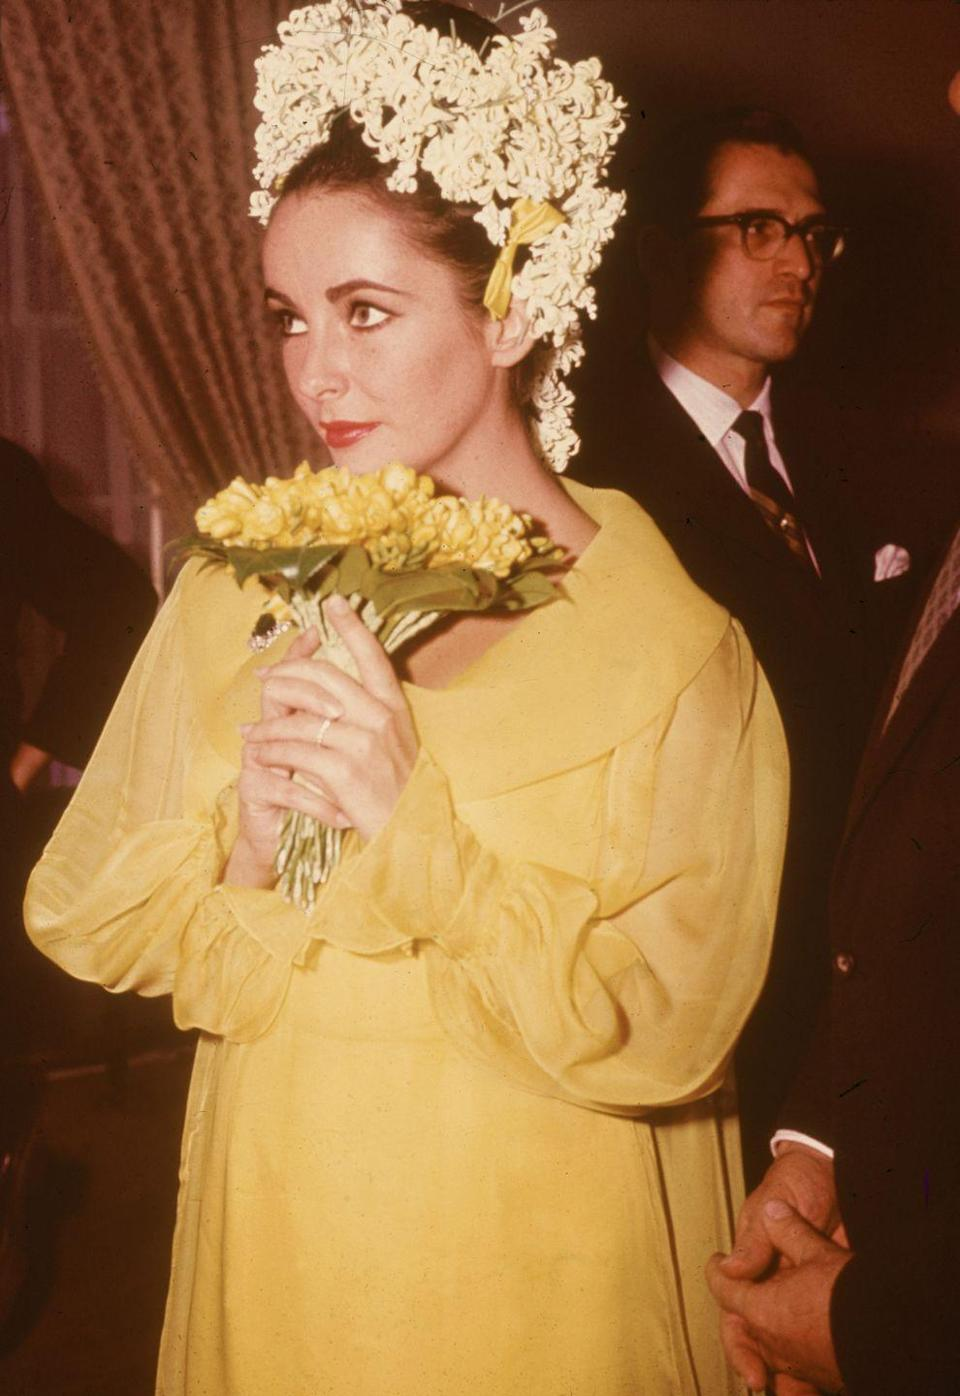 <p>For Elizabeth Taylor's first wedding to Richard Burton - they married again over 10 years later - she wore a canary yellow dress and matching bouquet, with her hair adorned with flowers which cascaded down her long ponytail. </p>